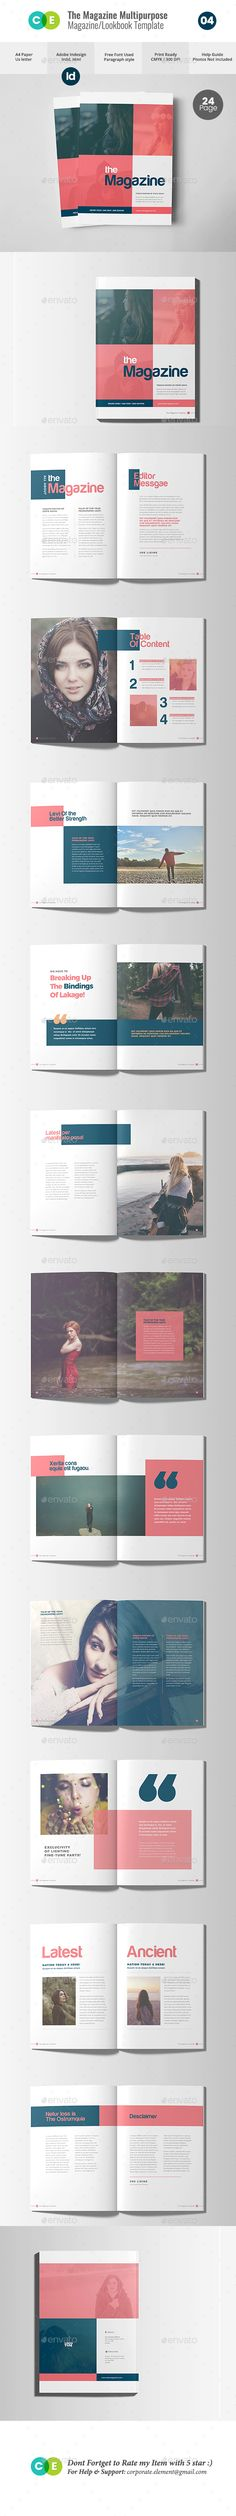 THE MAGAZINE | Multipurpose Magazine Lookbook V04 — InDesign INDD #art magazine #lookbook • Download ➝ https://graphicriver.net/item/the-magazine-multipurpose-magazine-lookbook-v04/20387917?ref=pxcr